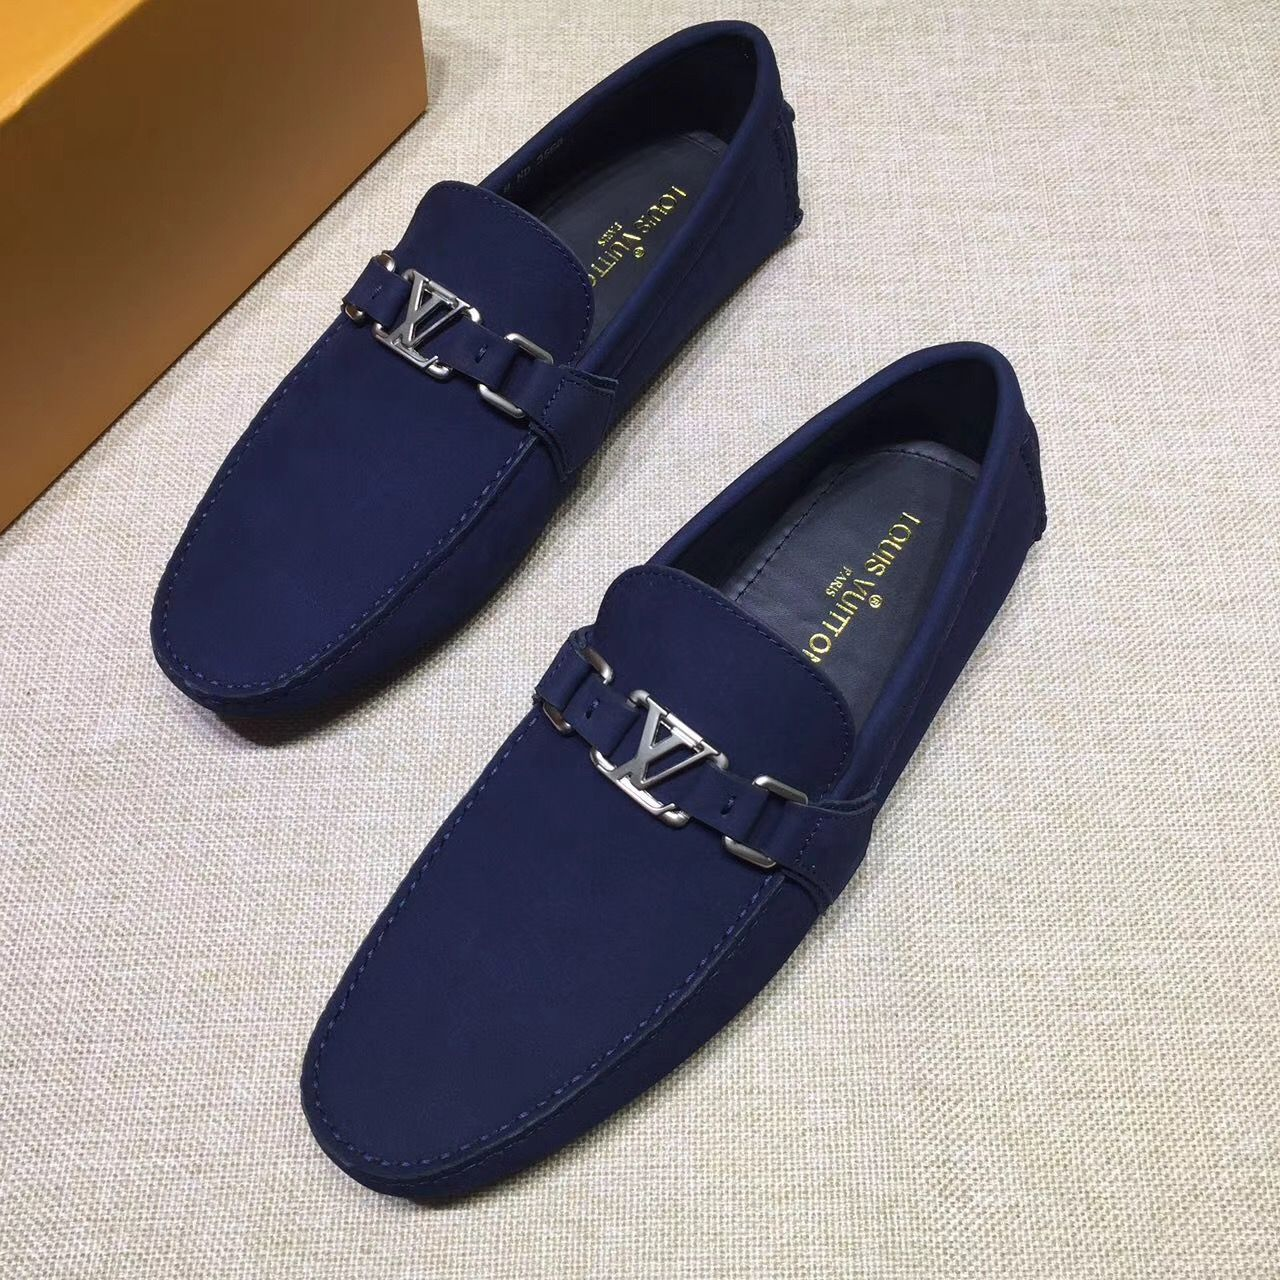 d69454b41e0 Louis Vuitton lv man shoes leather loafers | lv shoes in 2019 | Lv ...